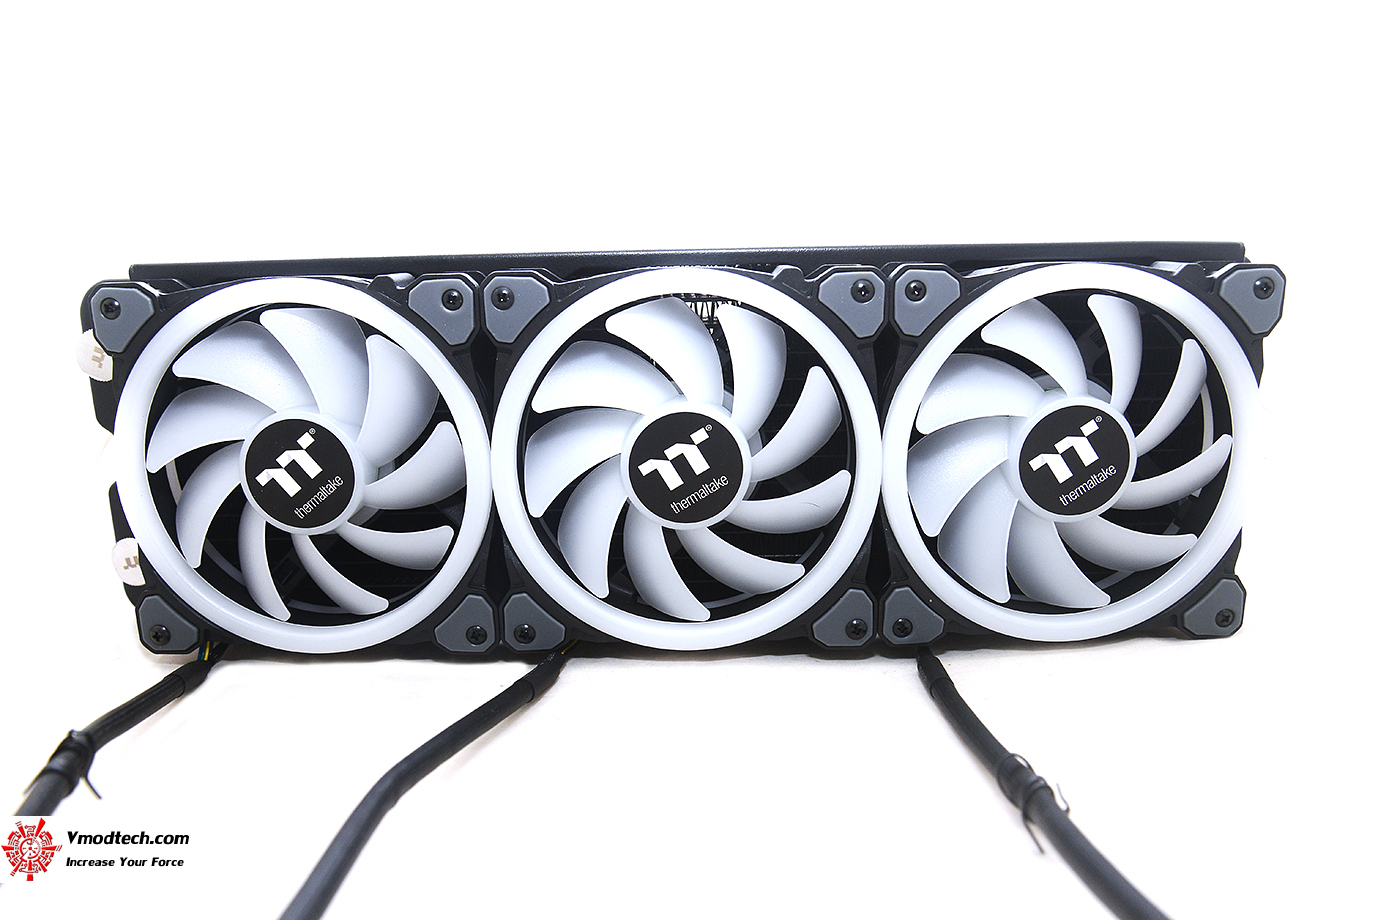 dsc 7711 Thermaltake Pacific CL360 Radiator Review